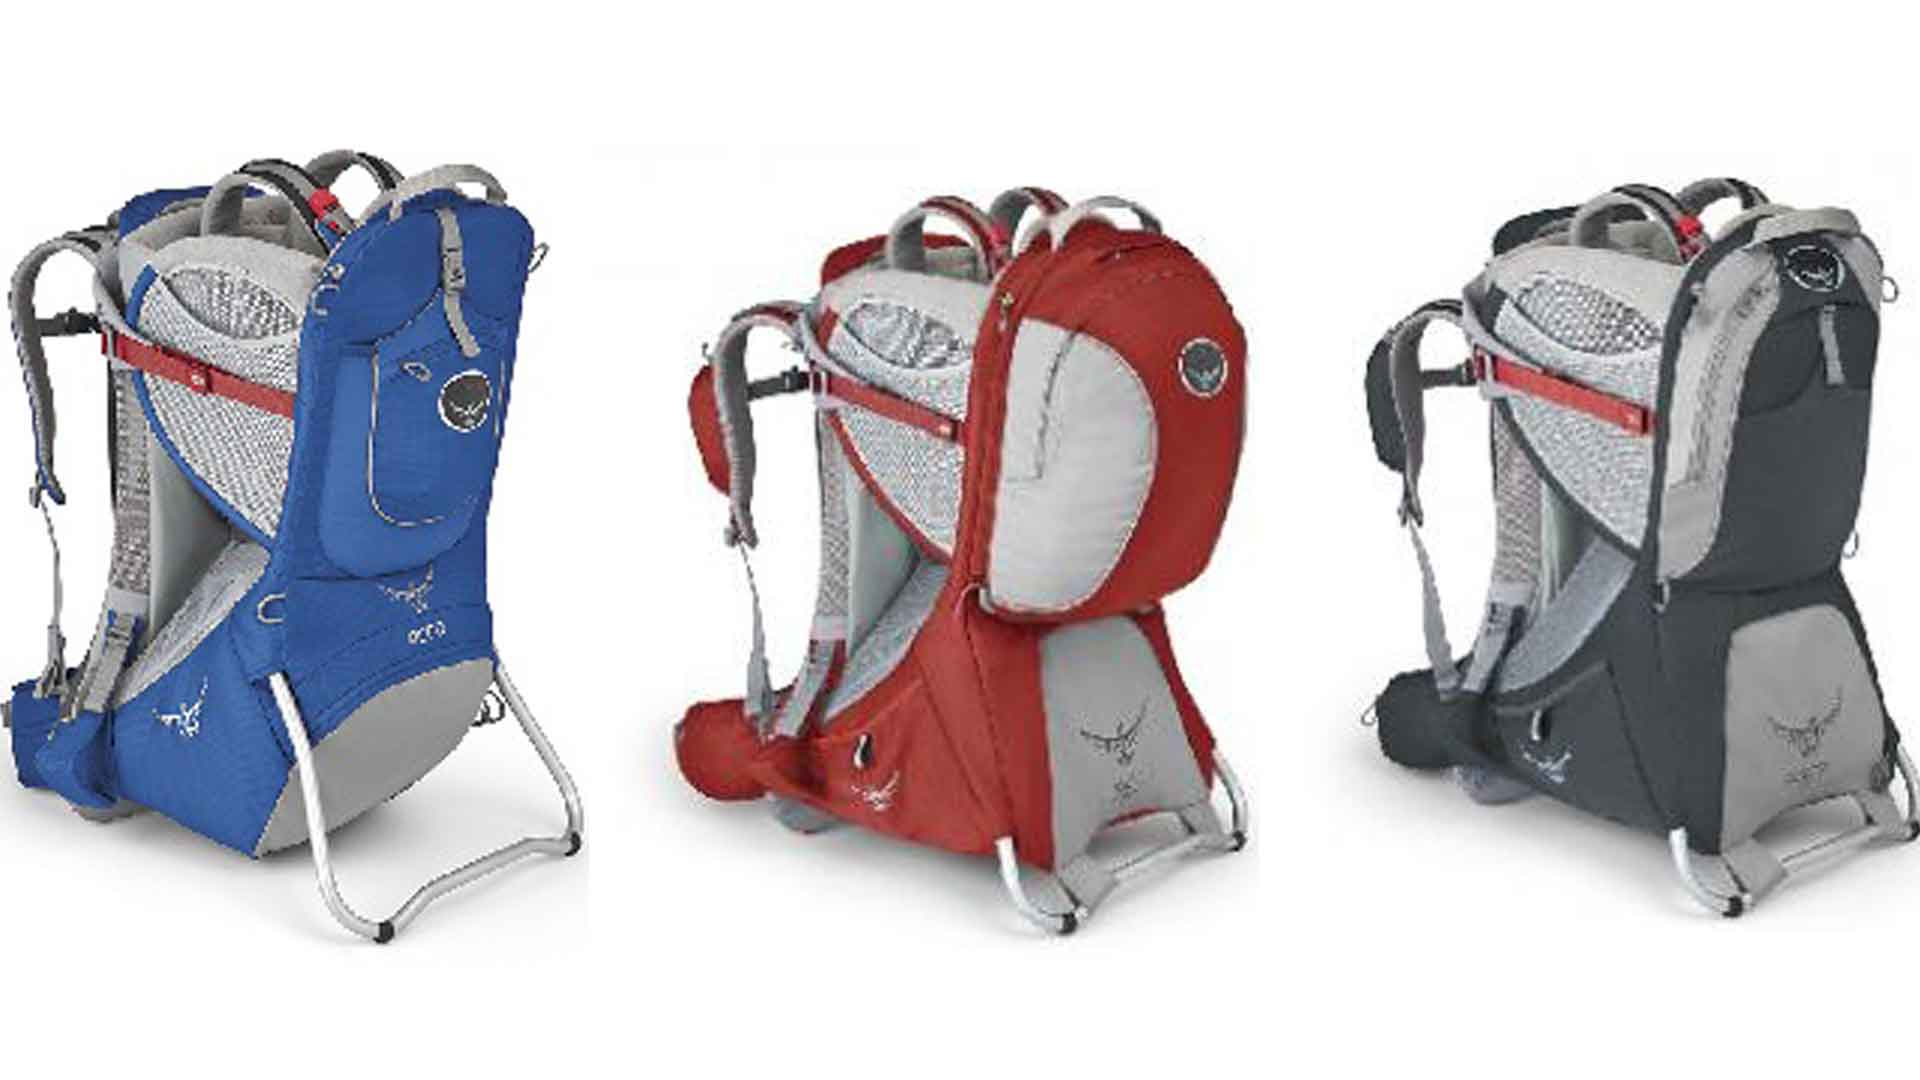 According to the Consumer Product Safety Commission, about 82,000 Osprey backpacks are a part of the recall.